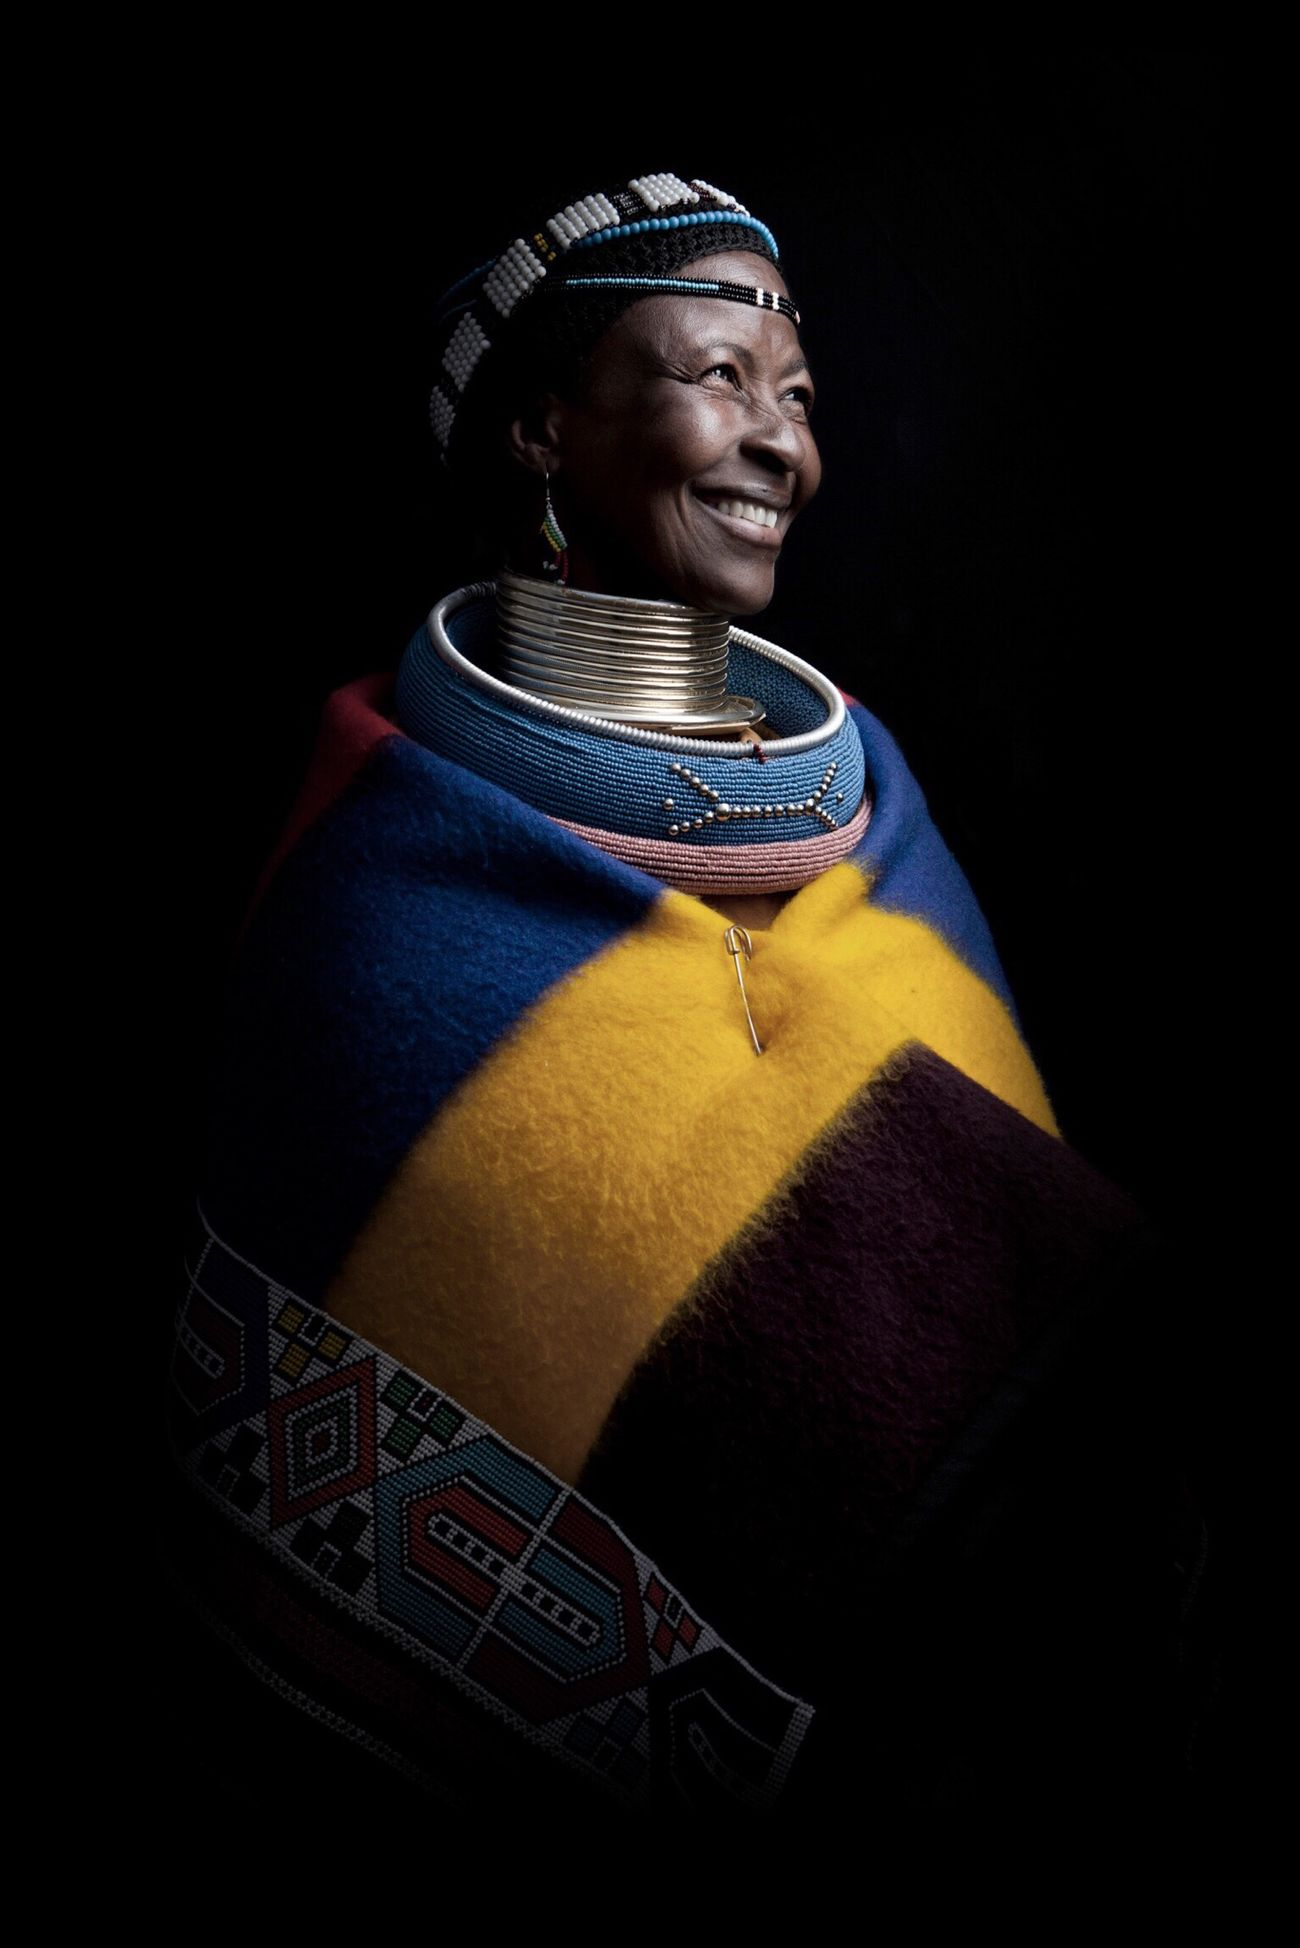 Ndebele woman in South Africa. Eyeem South Africa South Africa Ndebele Africa African Beauty Portrait Tribal African